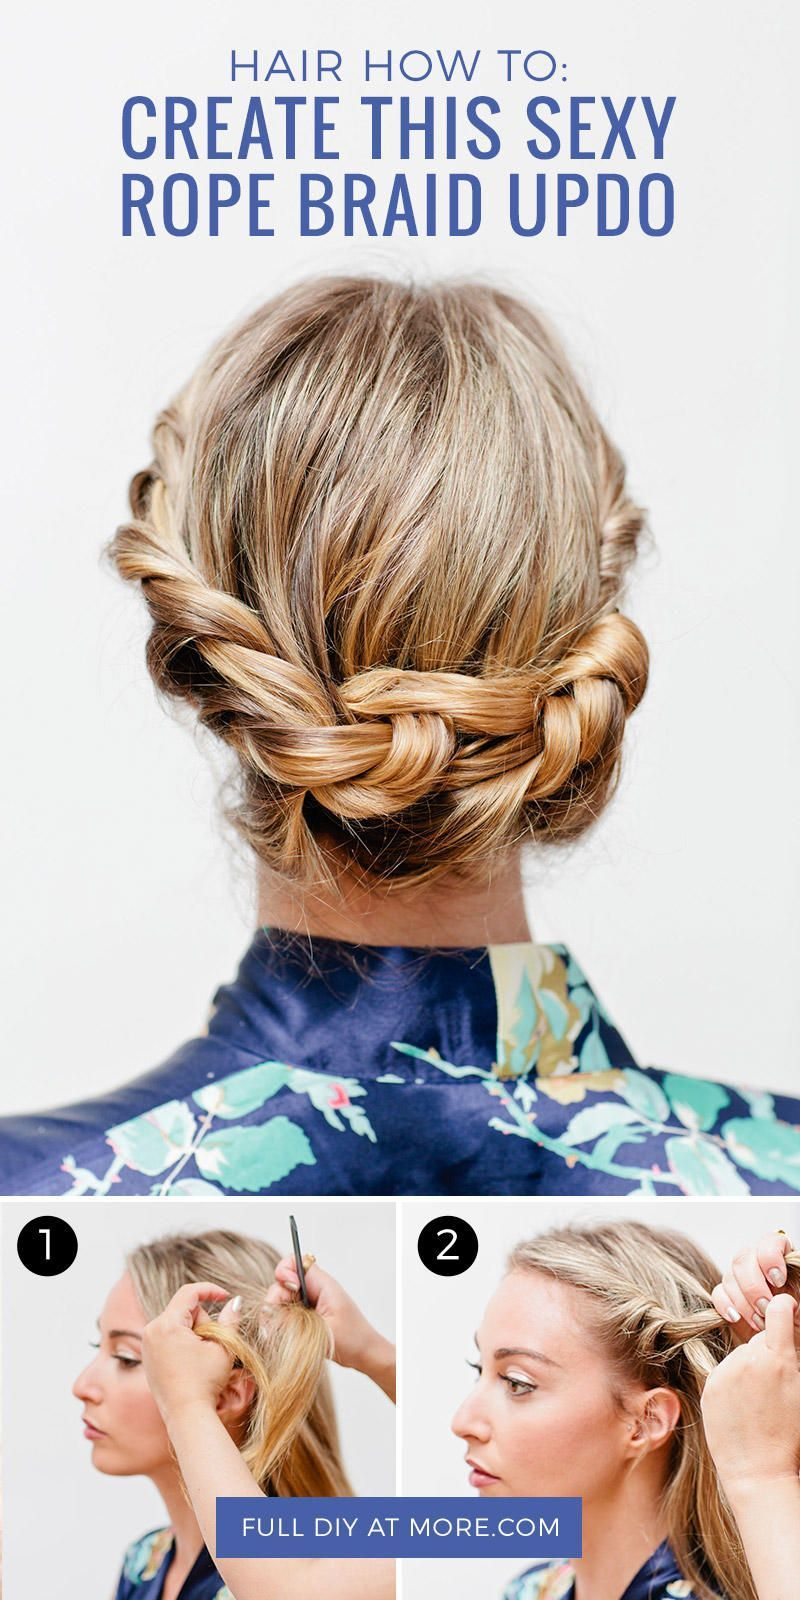 This rope braid updo hairstyle is sure to keep strands in place